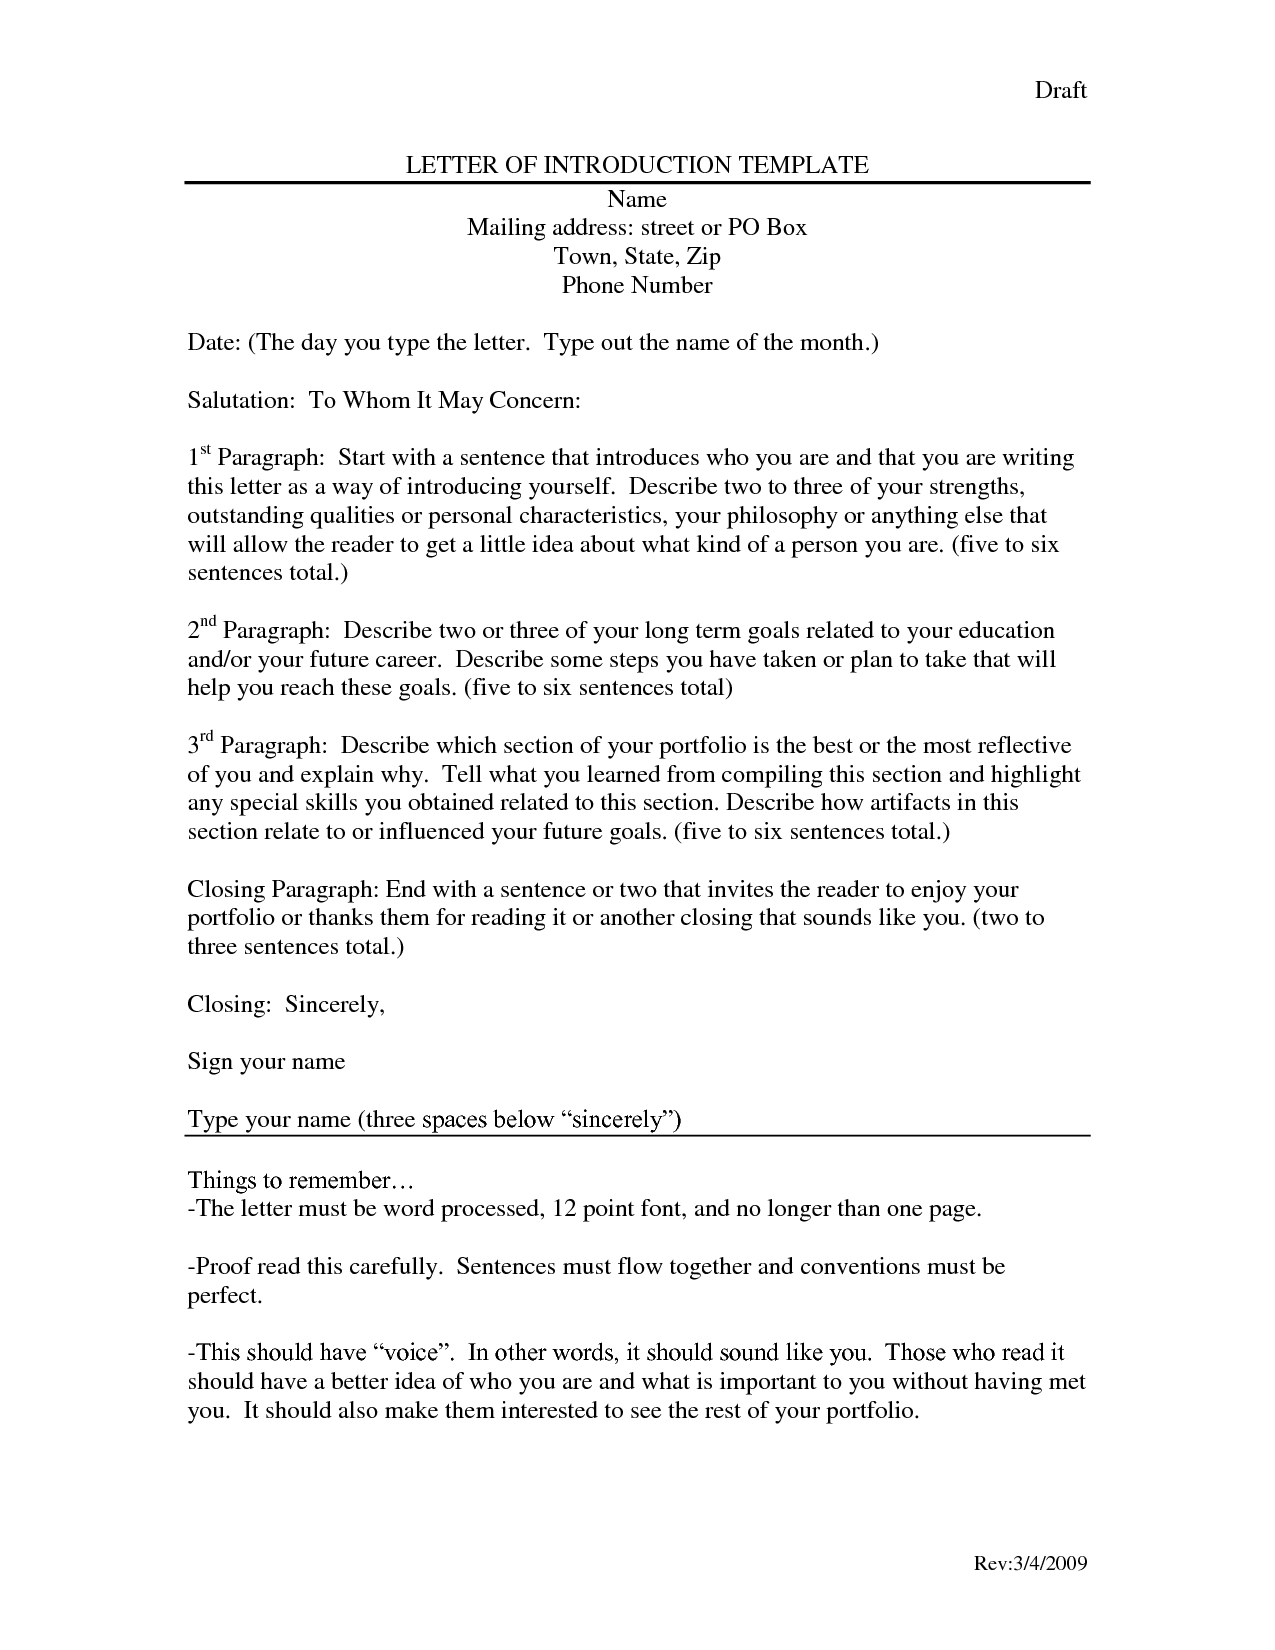 Letter Of Introduction Template Dancingmermaidcom YfzceI